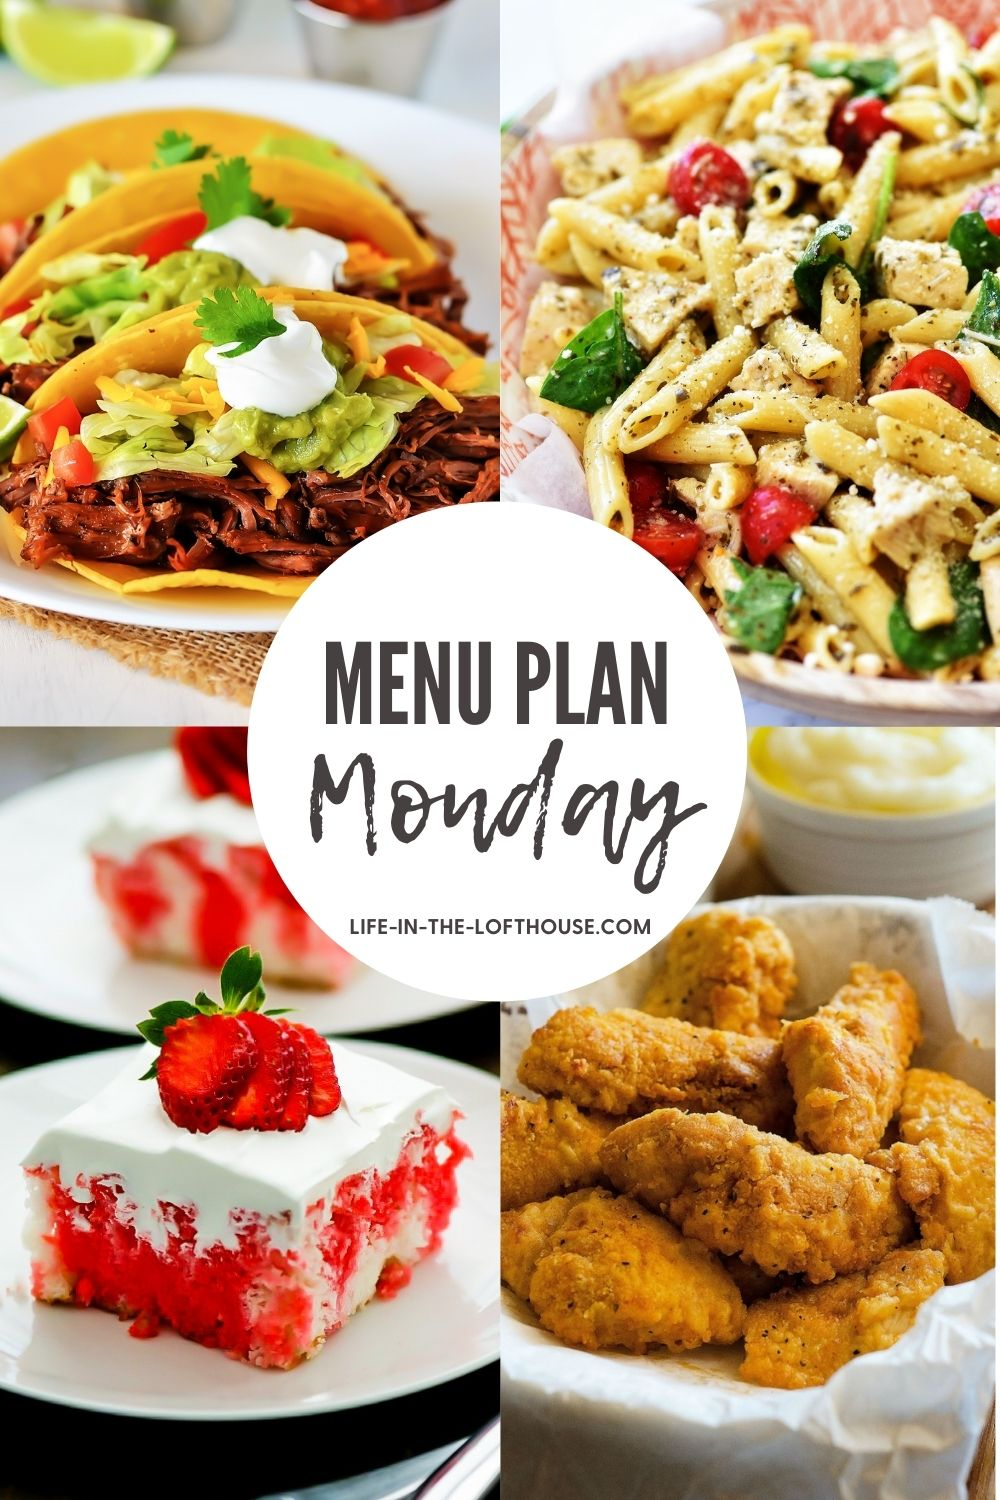 Menu Plan Monday is a dinner menu with six dinner recipes and one dessert.